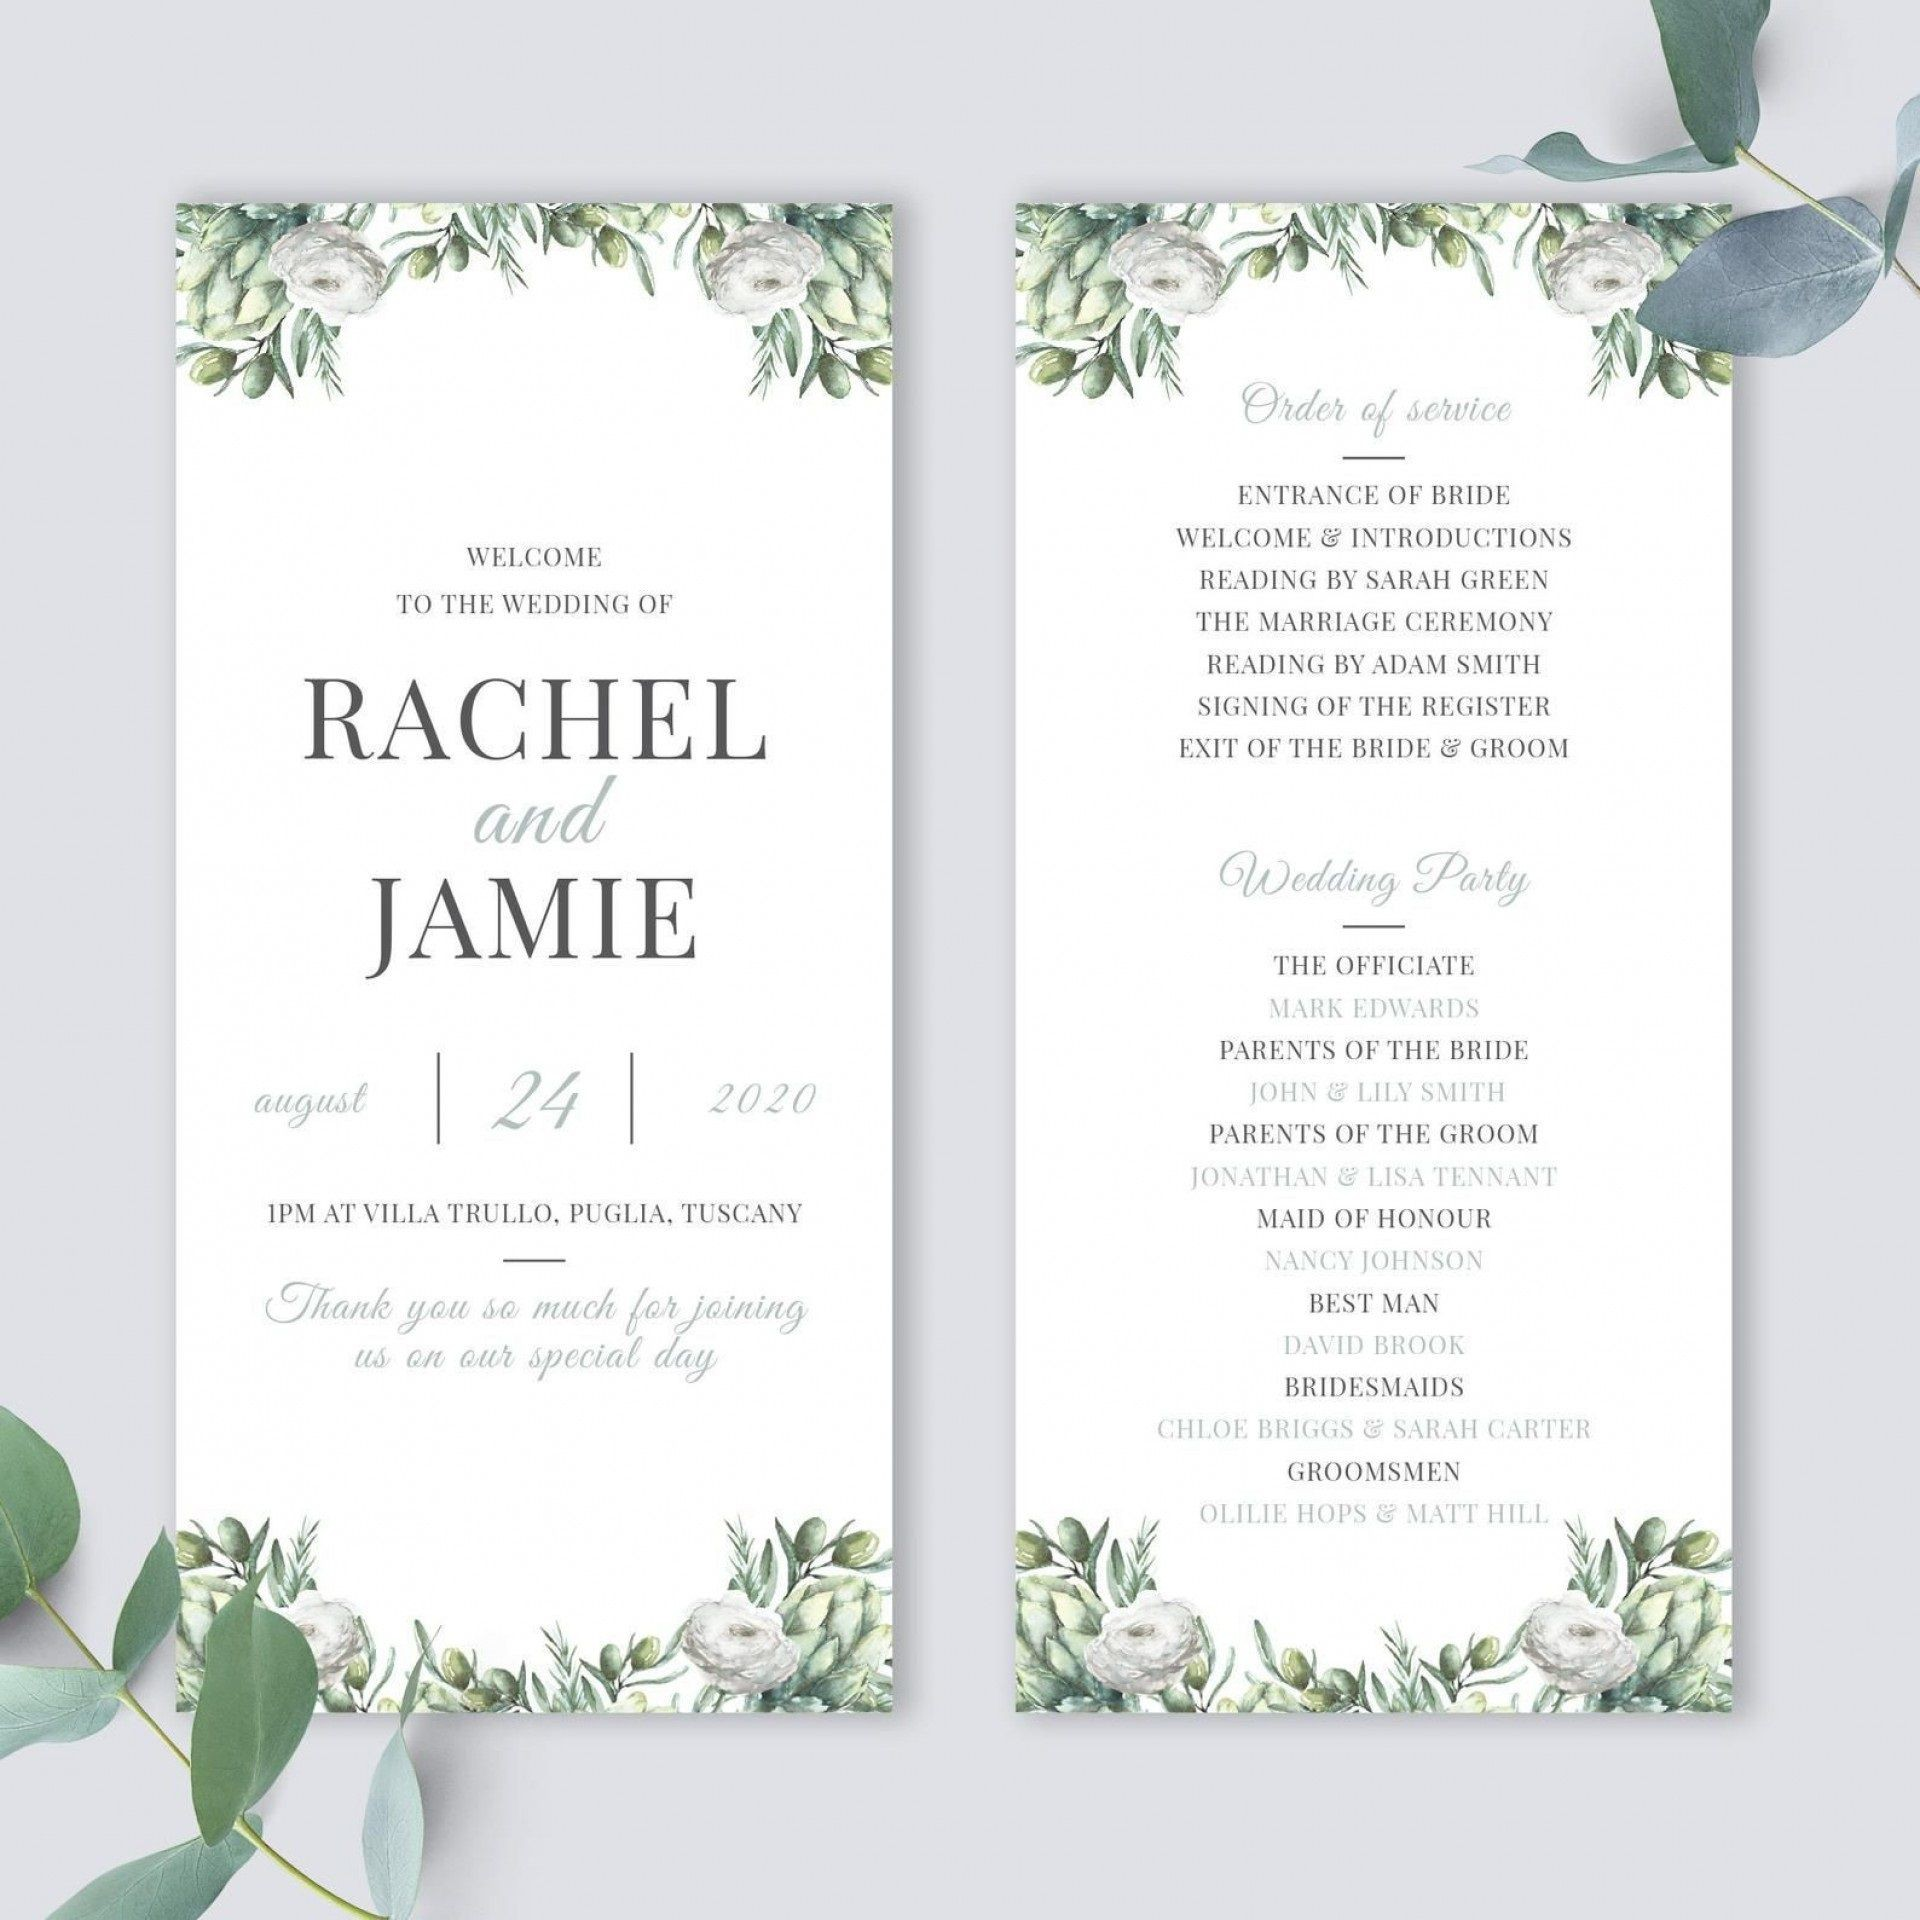 010 Best Wedding Order Of Service Template Word Highest Quality  Free Microsoft1920